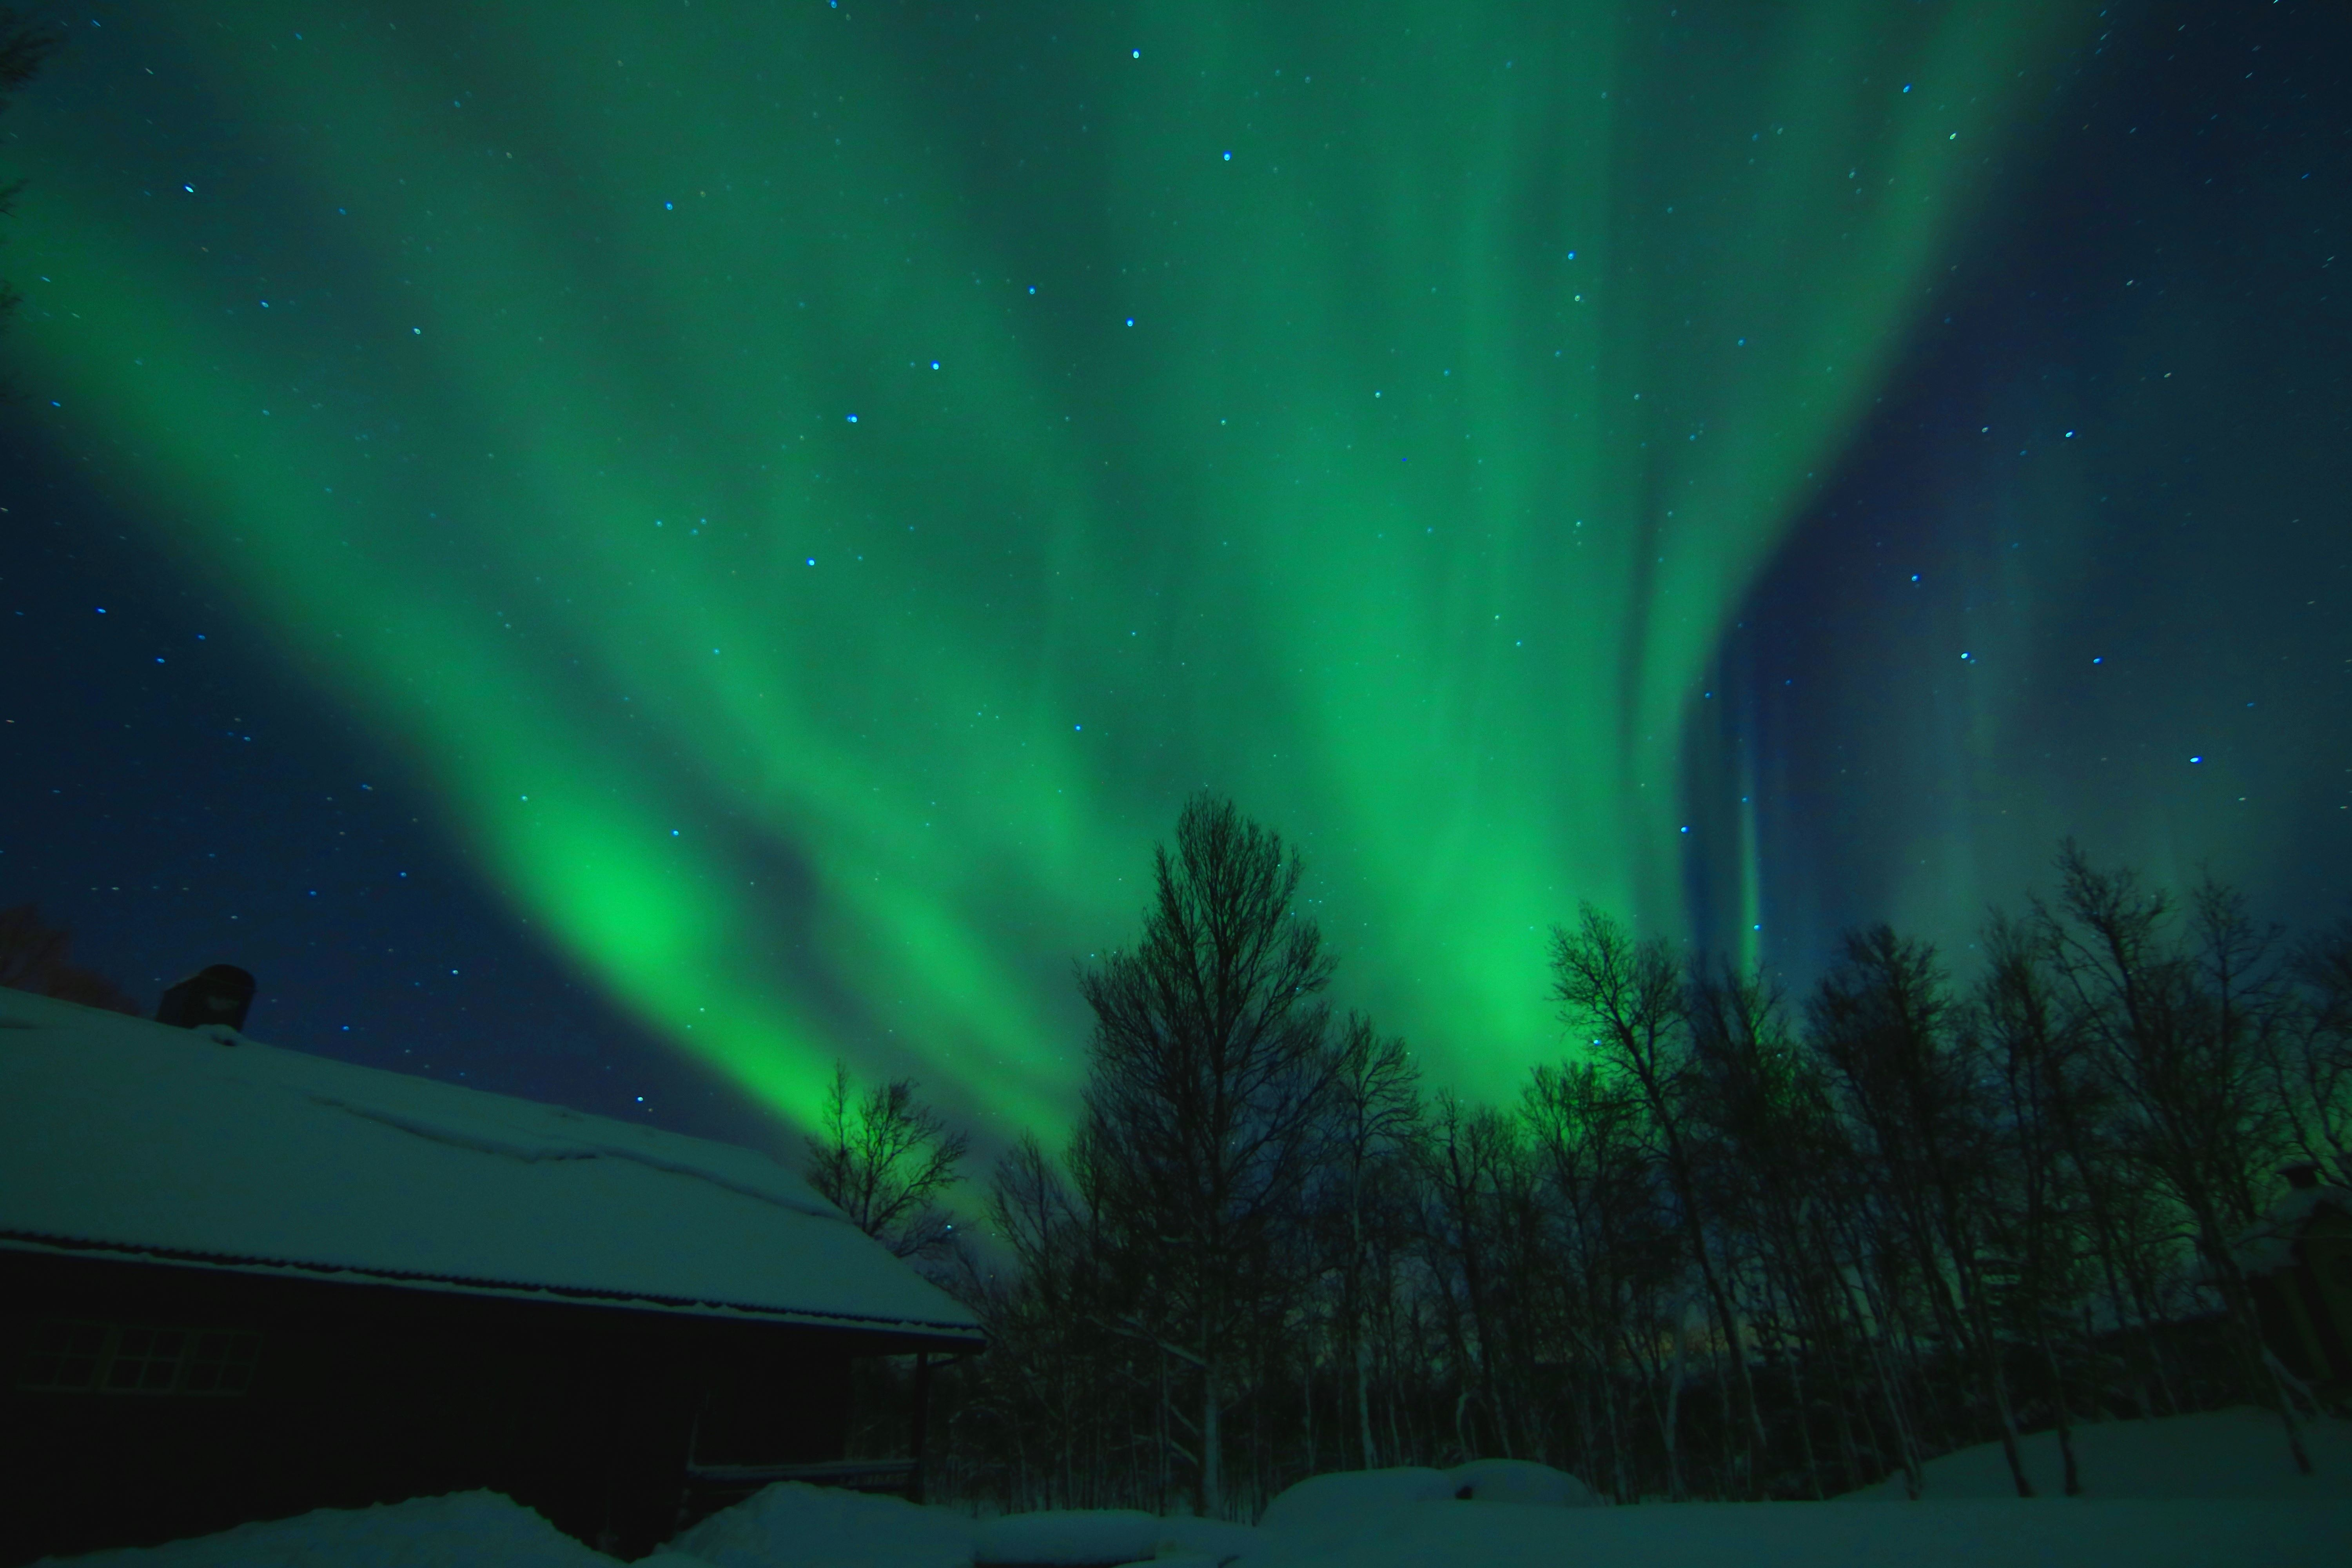 -SPECIAL OFFER- Northern Lights overnight at Polar Cabin with Snowshoeing/Hiking -All included- Max. 10 pers.- Polar Cabin